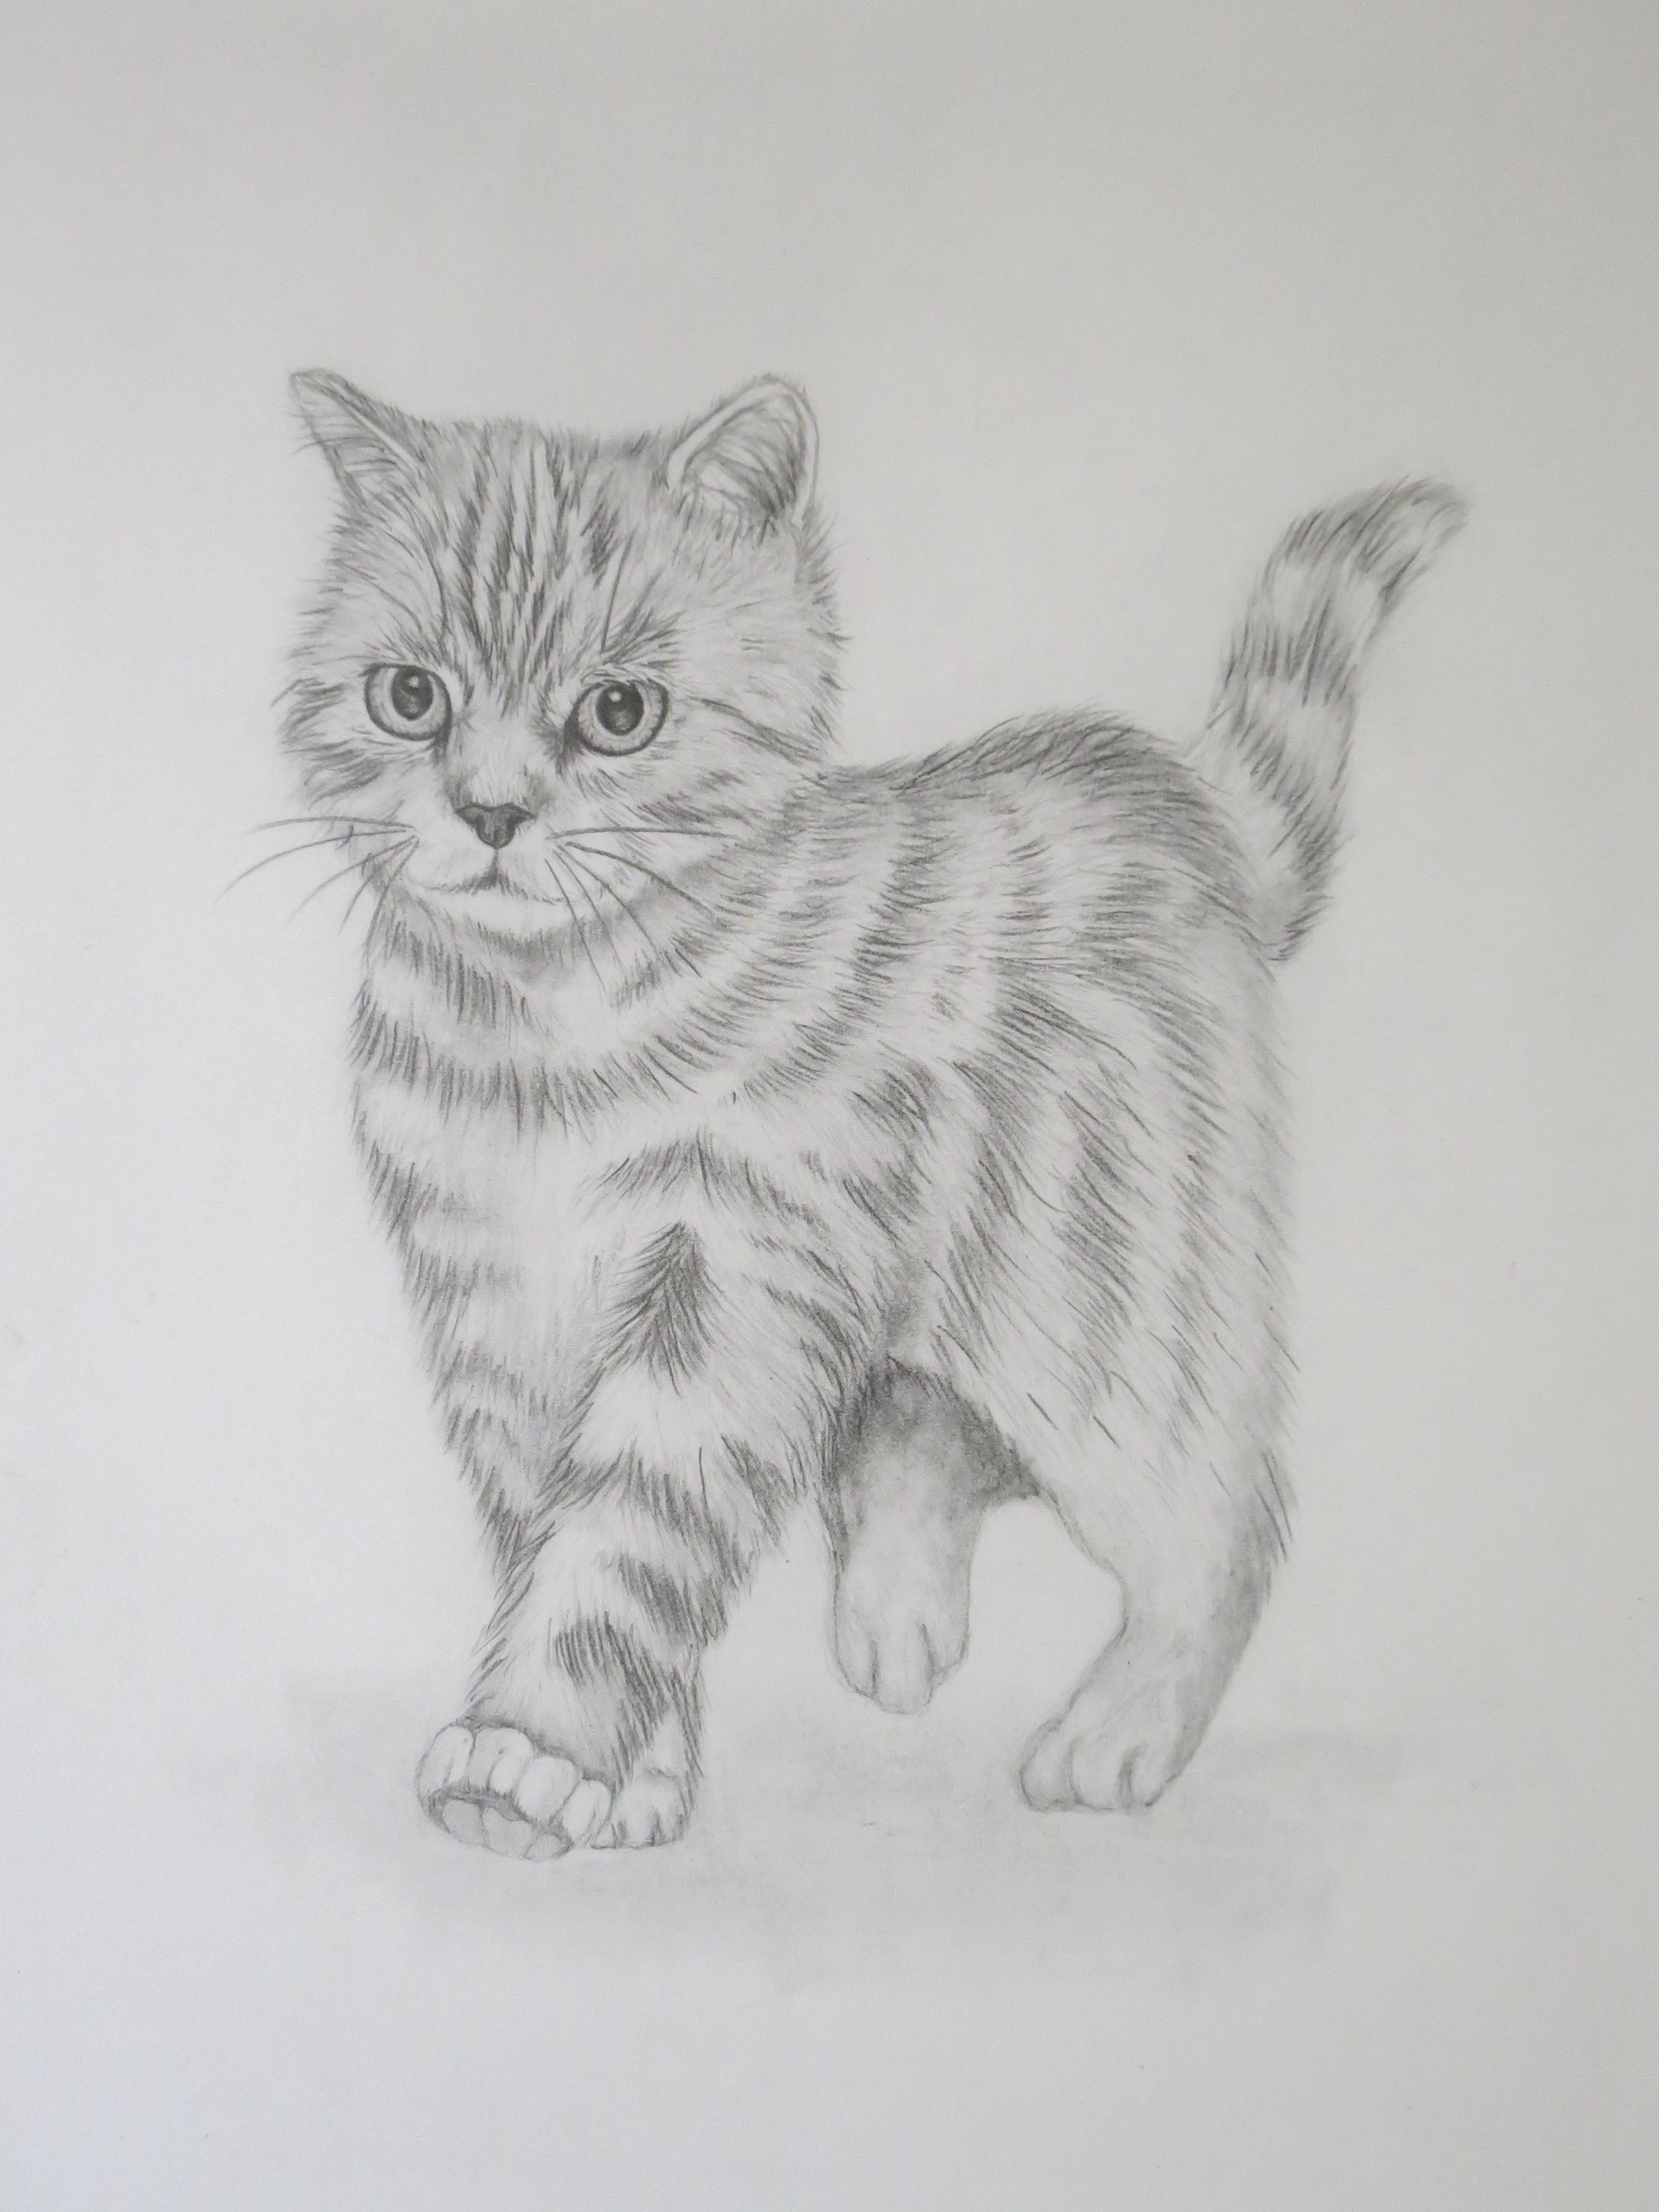 Adorable kitten pencil drawing prints now available on my etsy shop catlove kitten animals drawings pencildrawings artist sketch art etsy